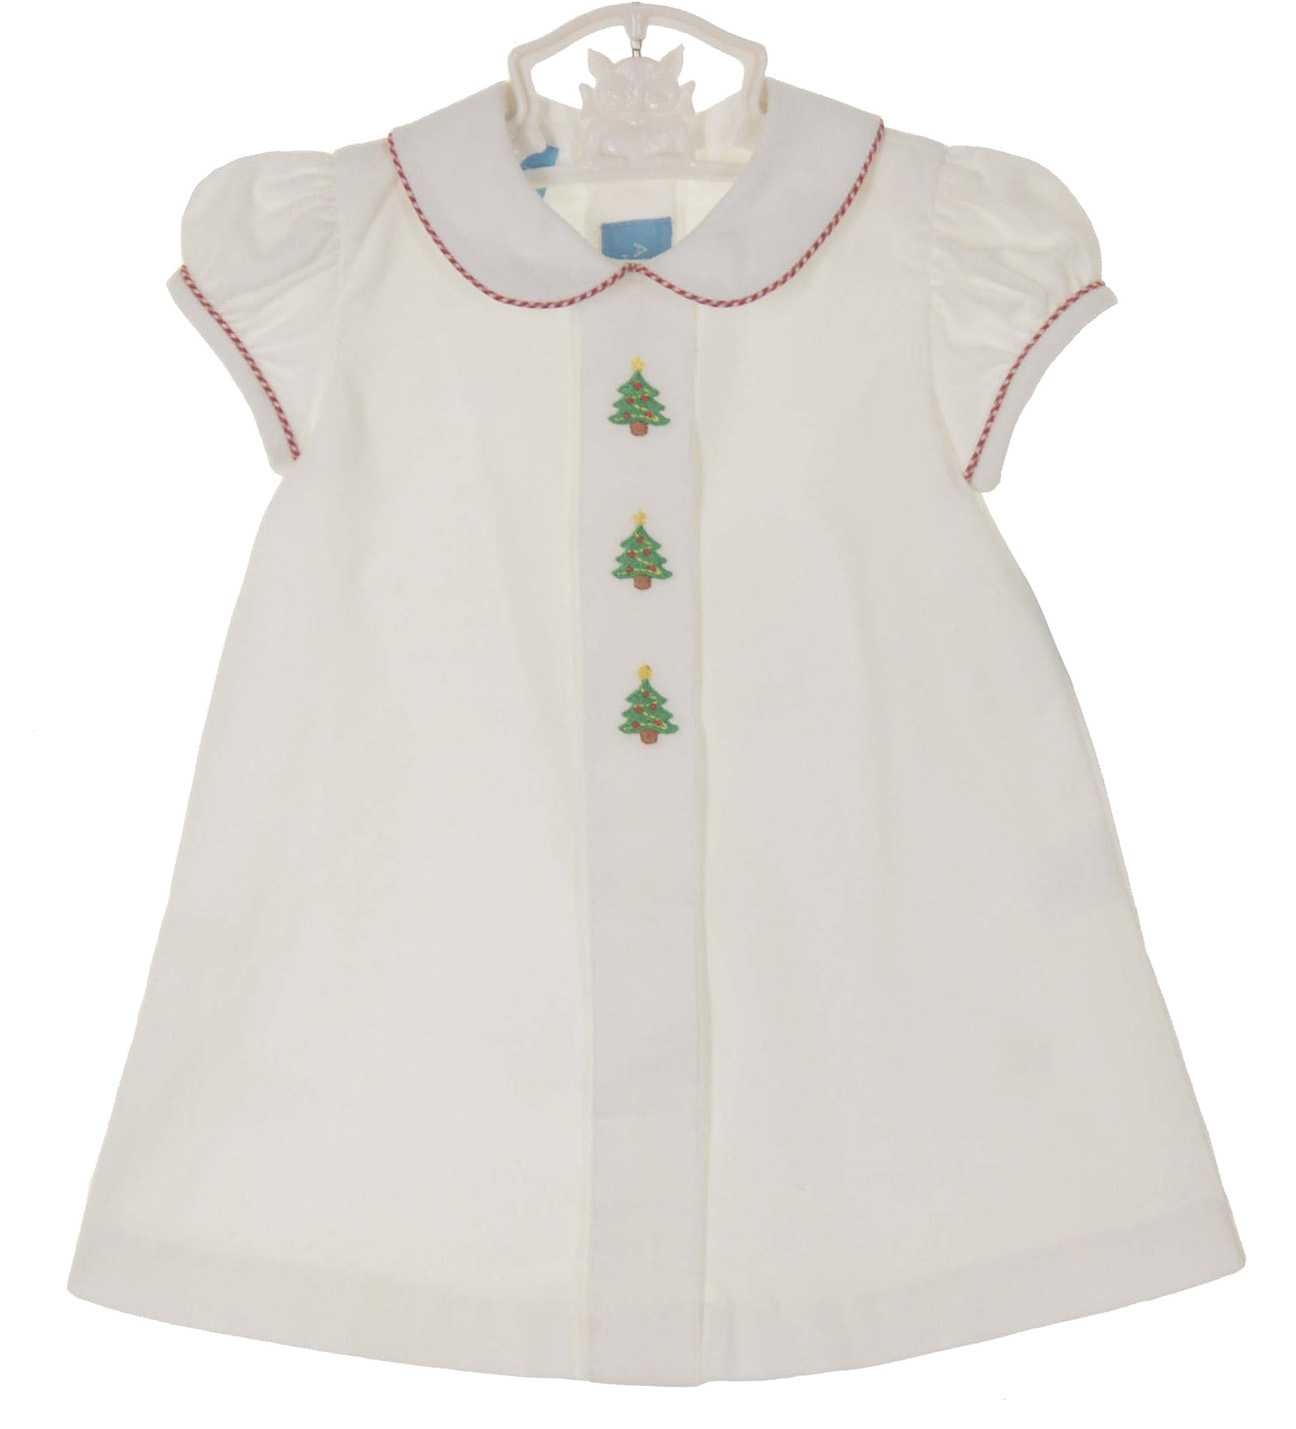 click to enlarge - White Christmas Dress